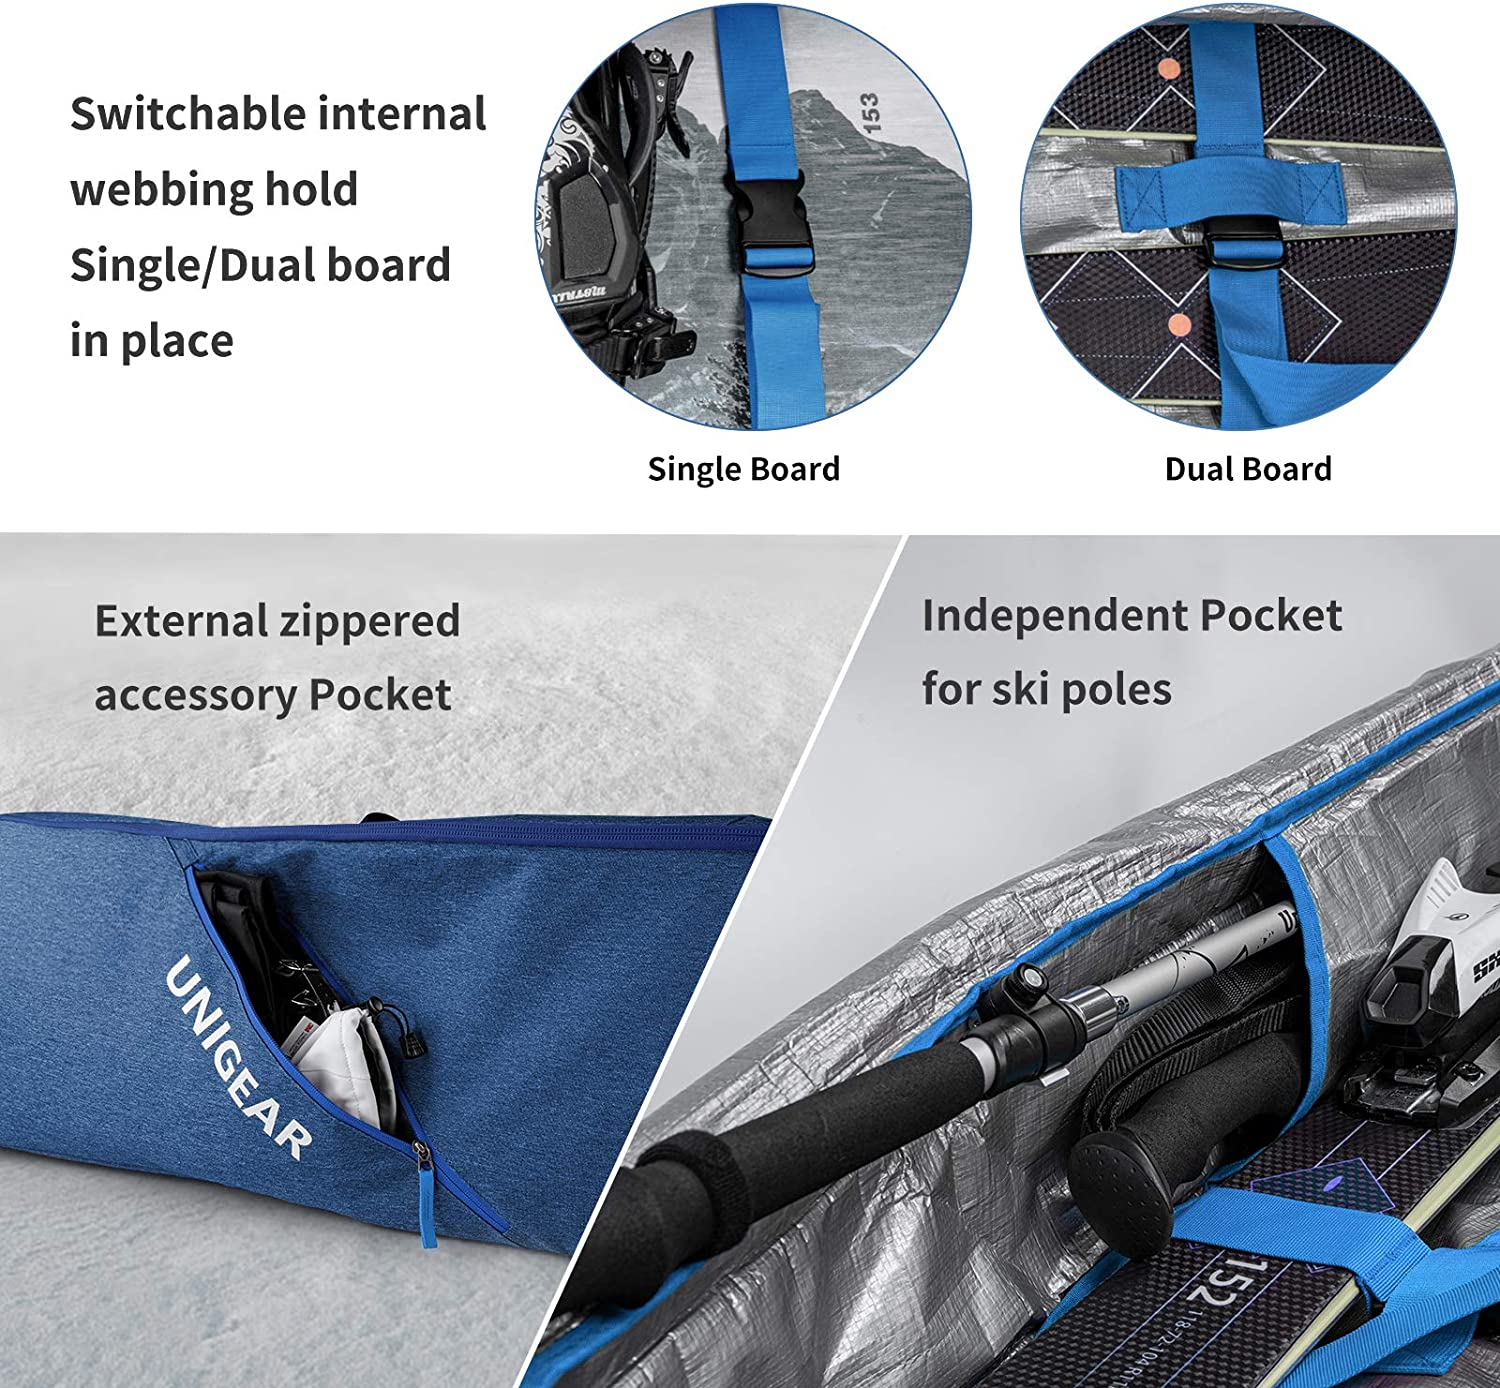 Unigear Ski Bag Snowboard Bag Reinforced Double Padding Bag and Hiking Accessories Goggles Gloves Perfect for Road Trips and Air Plane Travel for Snowboard Ski Outdoor Camping